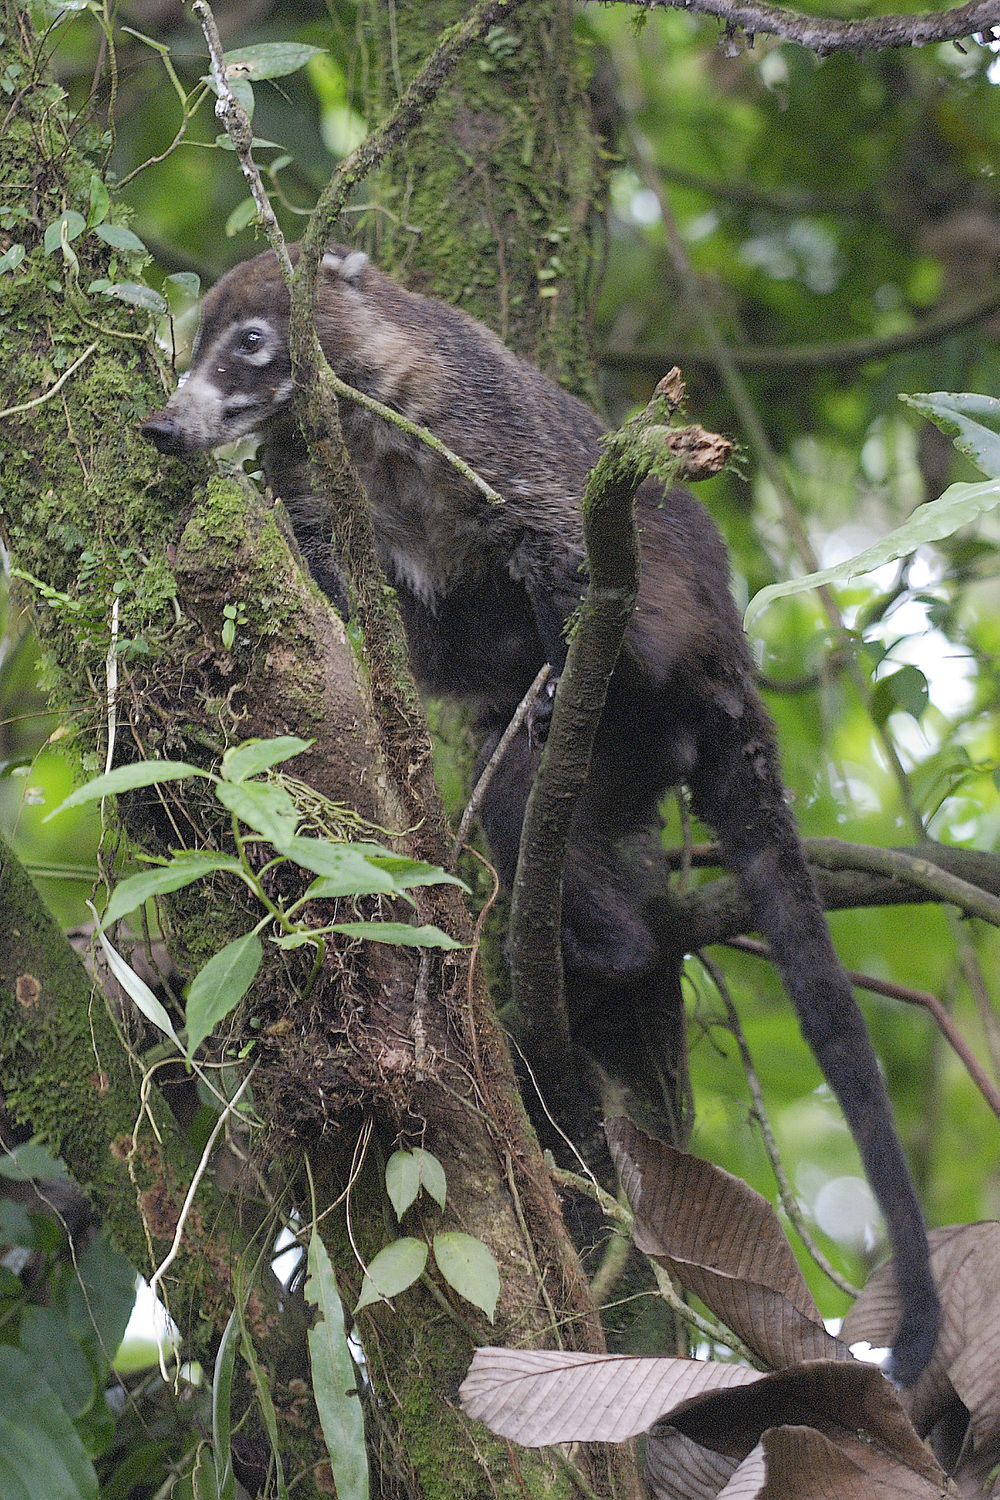 A wild coati we glimpsed near the trail, quite habituated to humans, La Paz was a great place for people with less mobility or young children to spot wildlife, and learn what to look for in wilder settings.